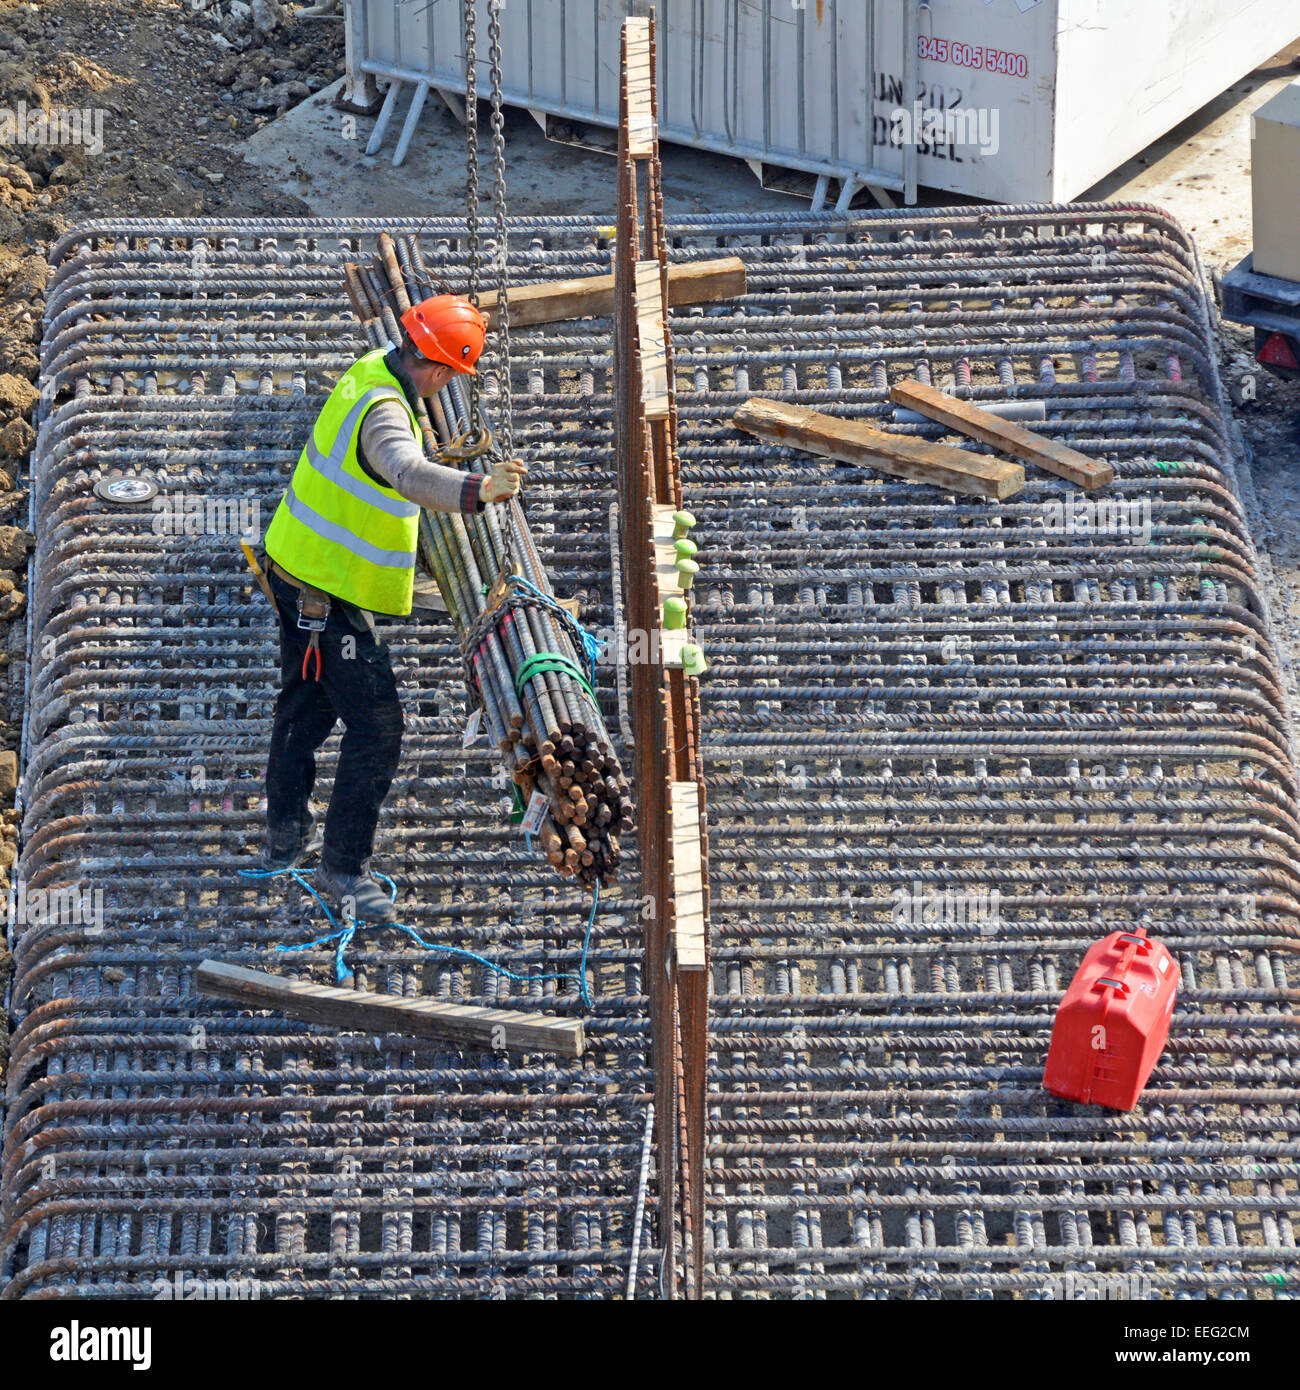 Steelfixer guiding a crane lowering bundle of reinforcing rods onto steel foundation frame construction site London - Stock Image